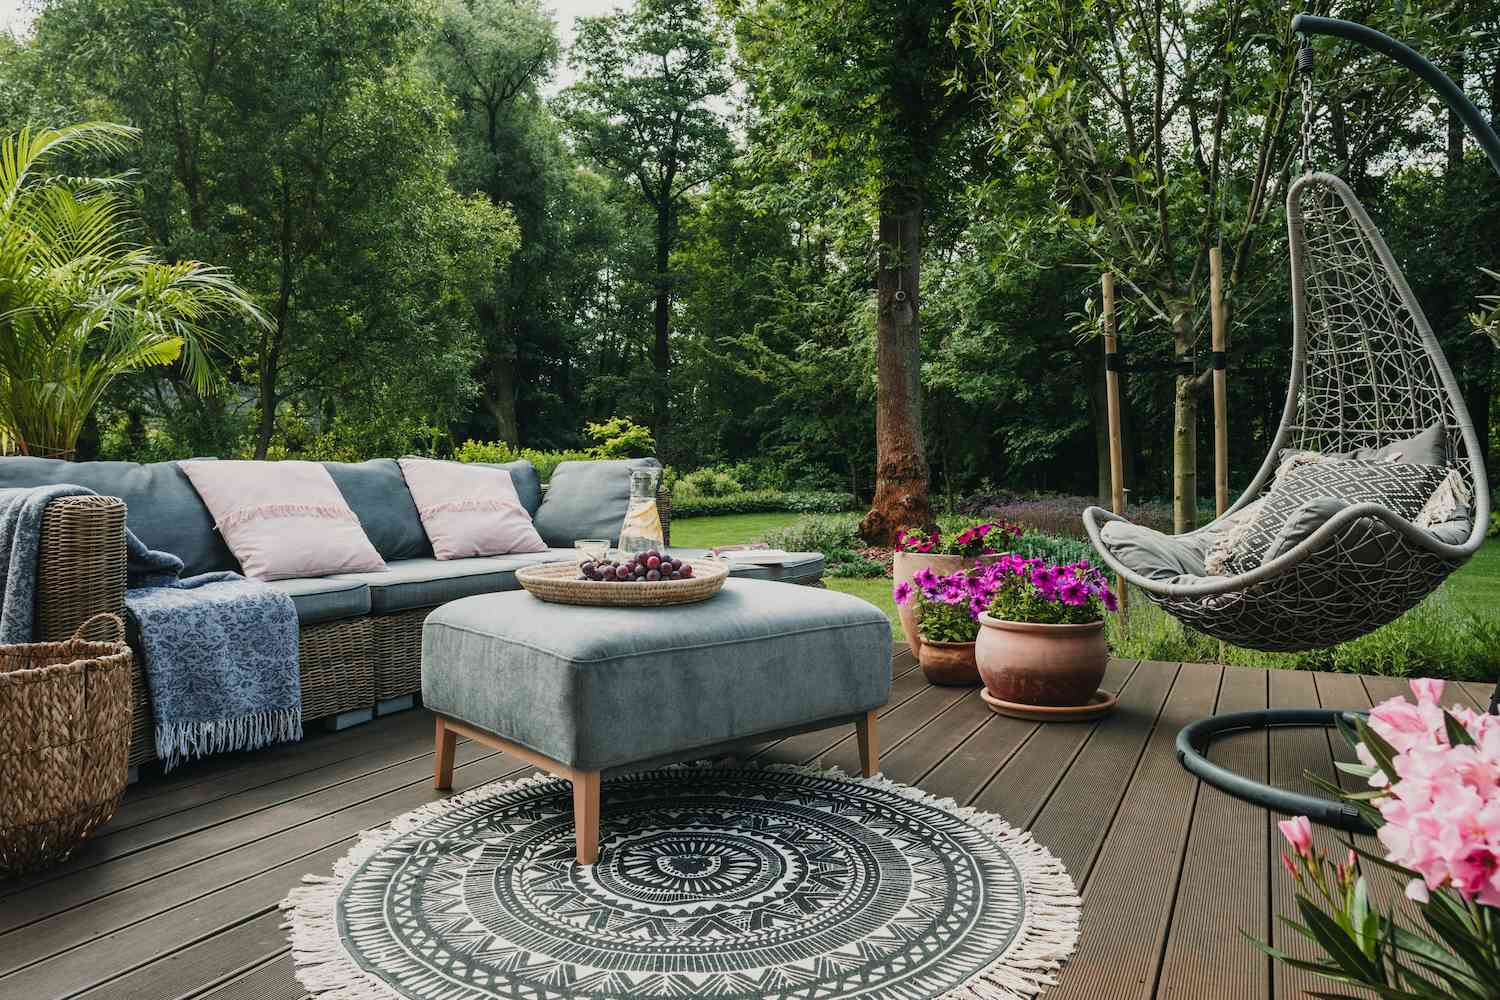 Outdoor seating area with couch, ottoman, hanging chair, and rug.